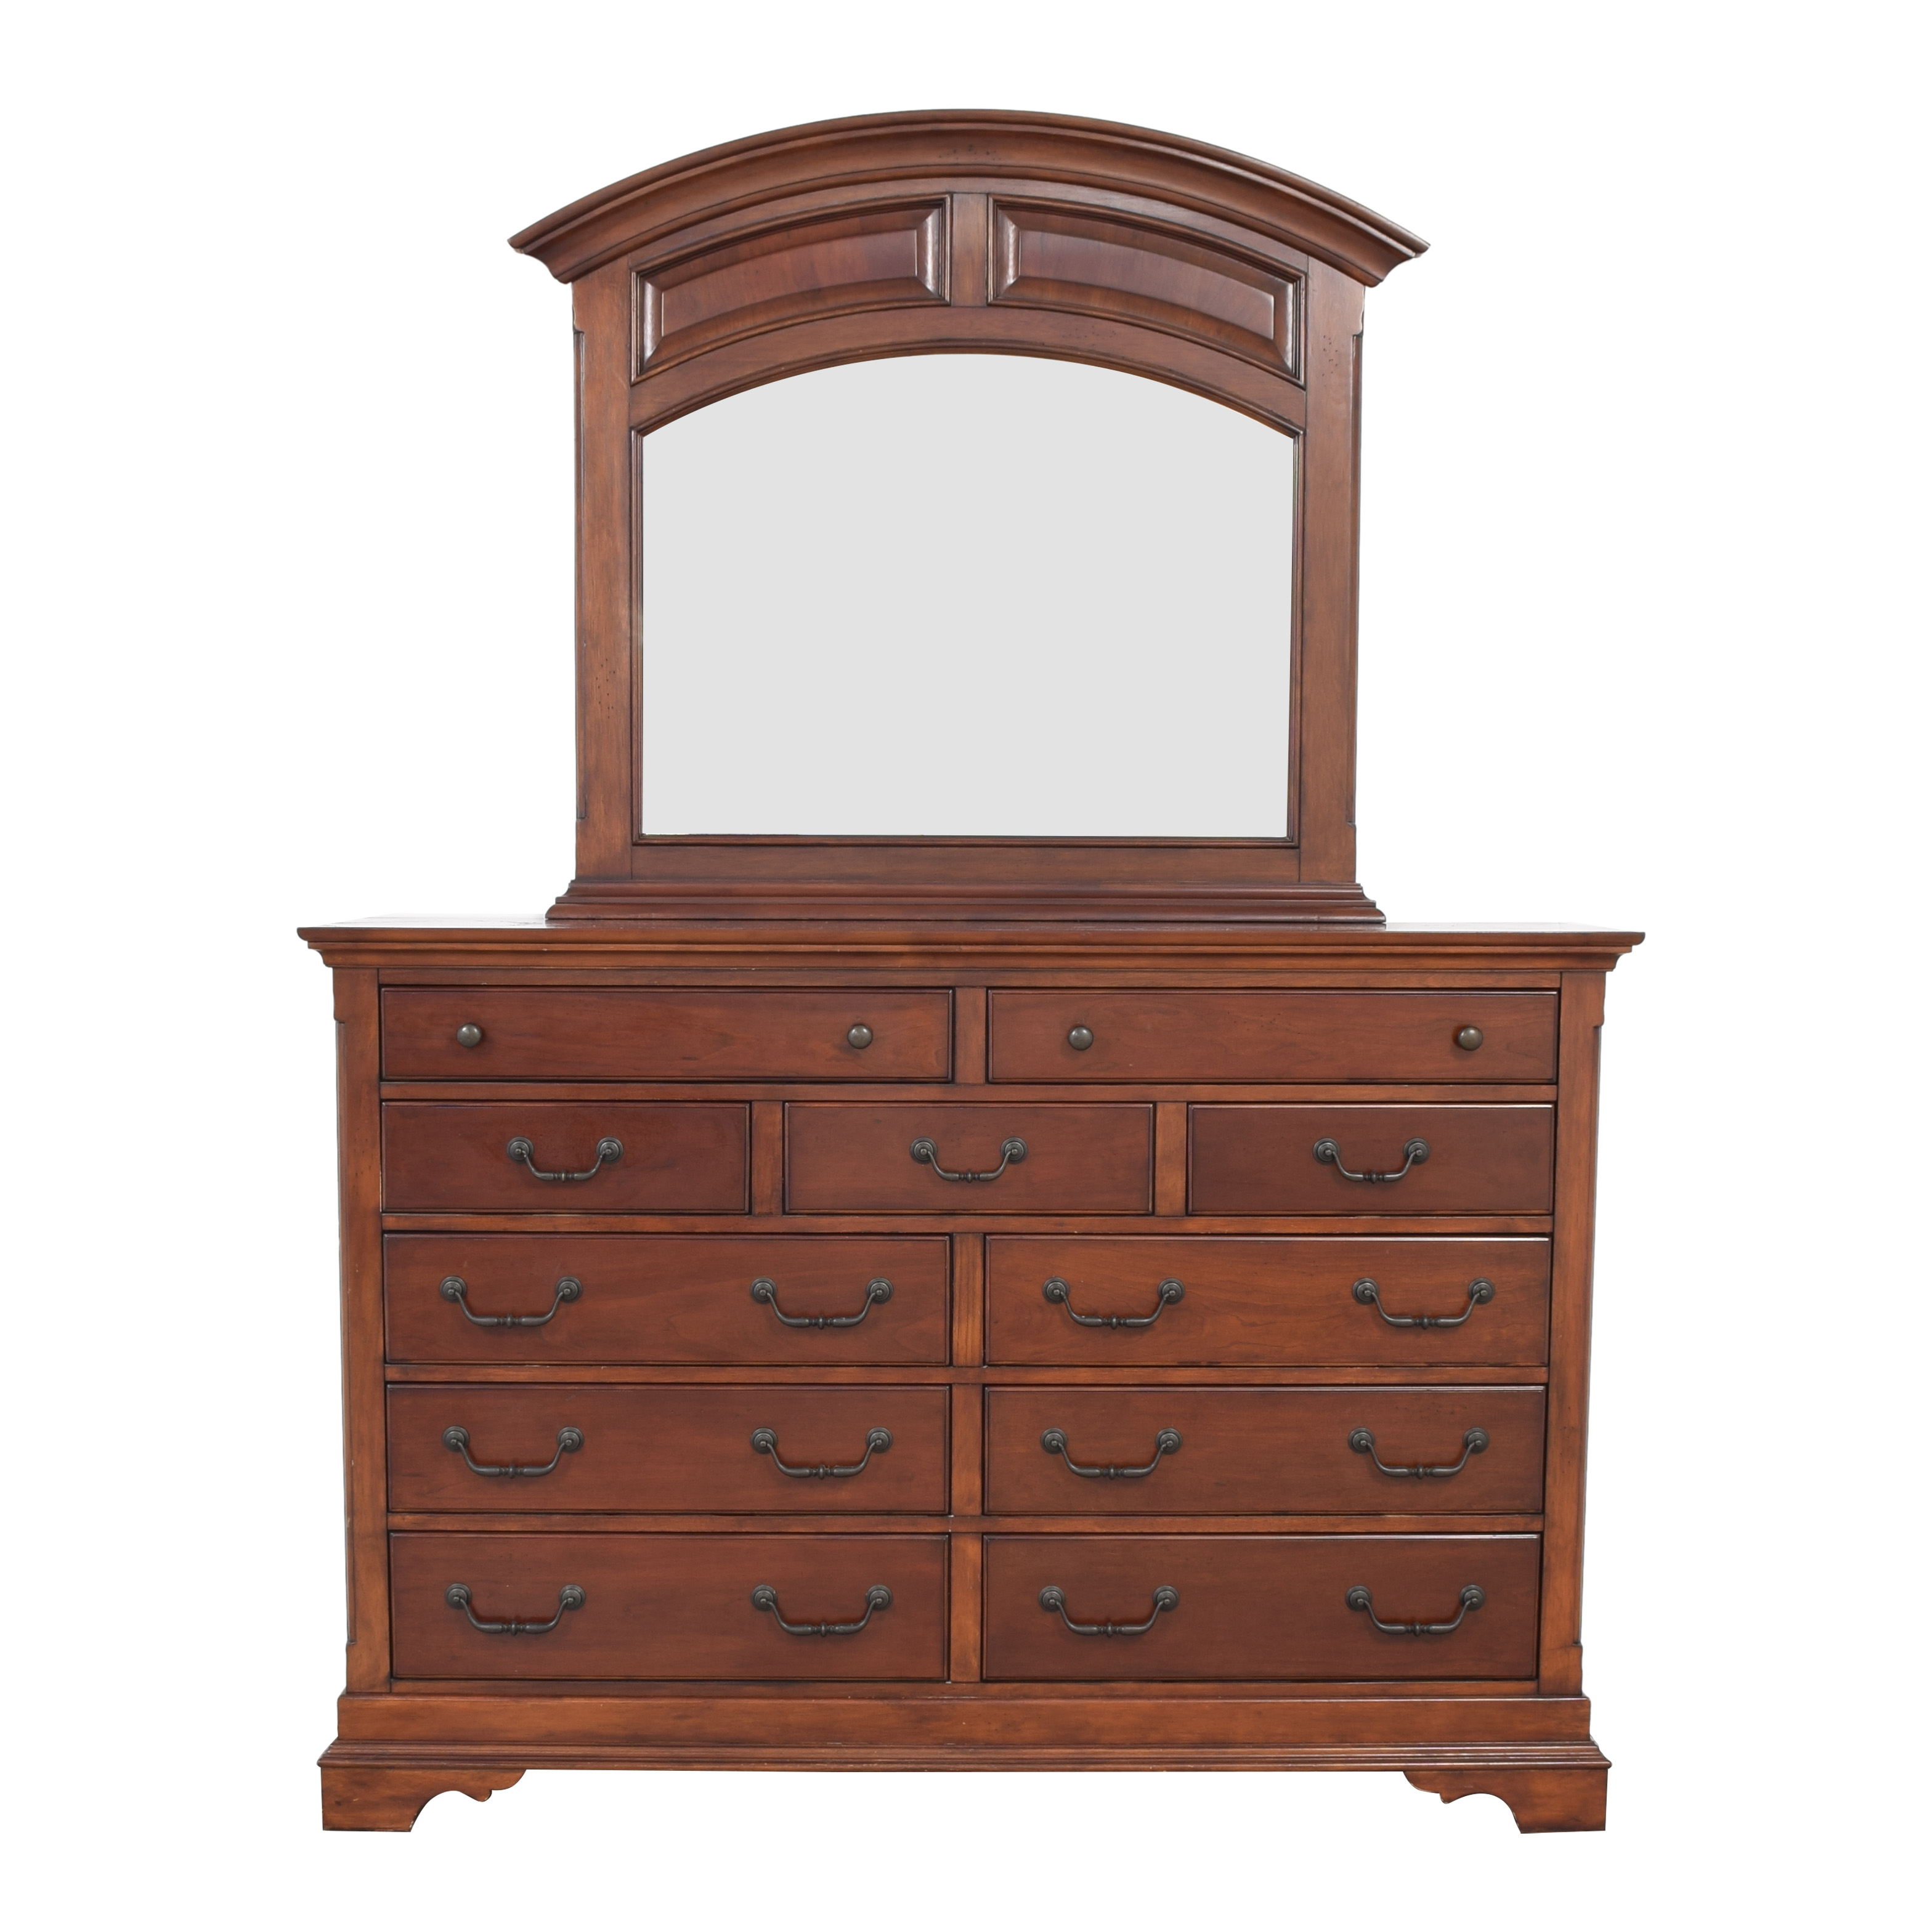 Dresser with Mirror price